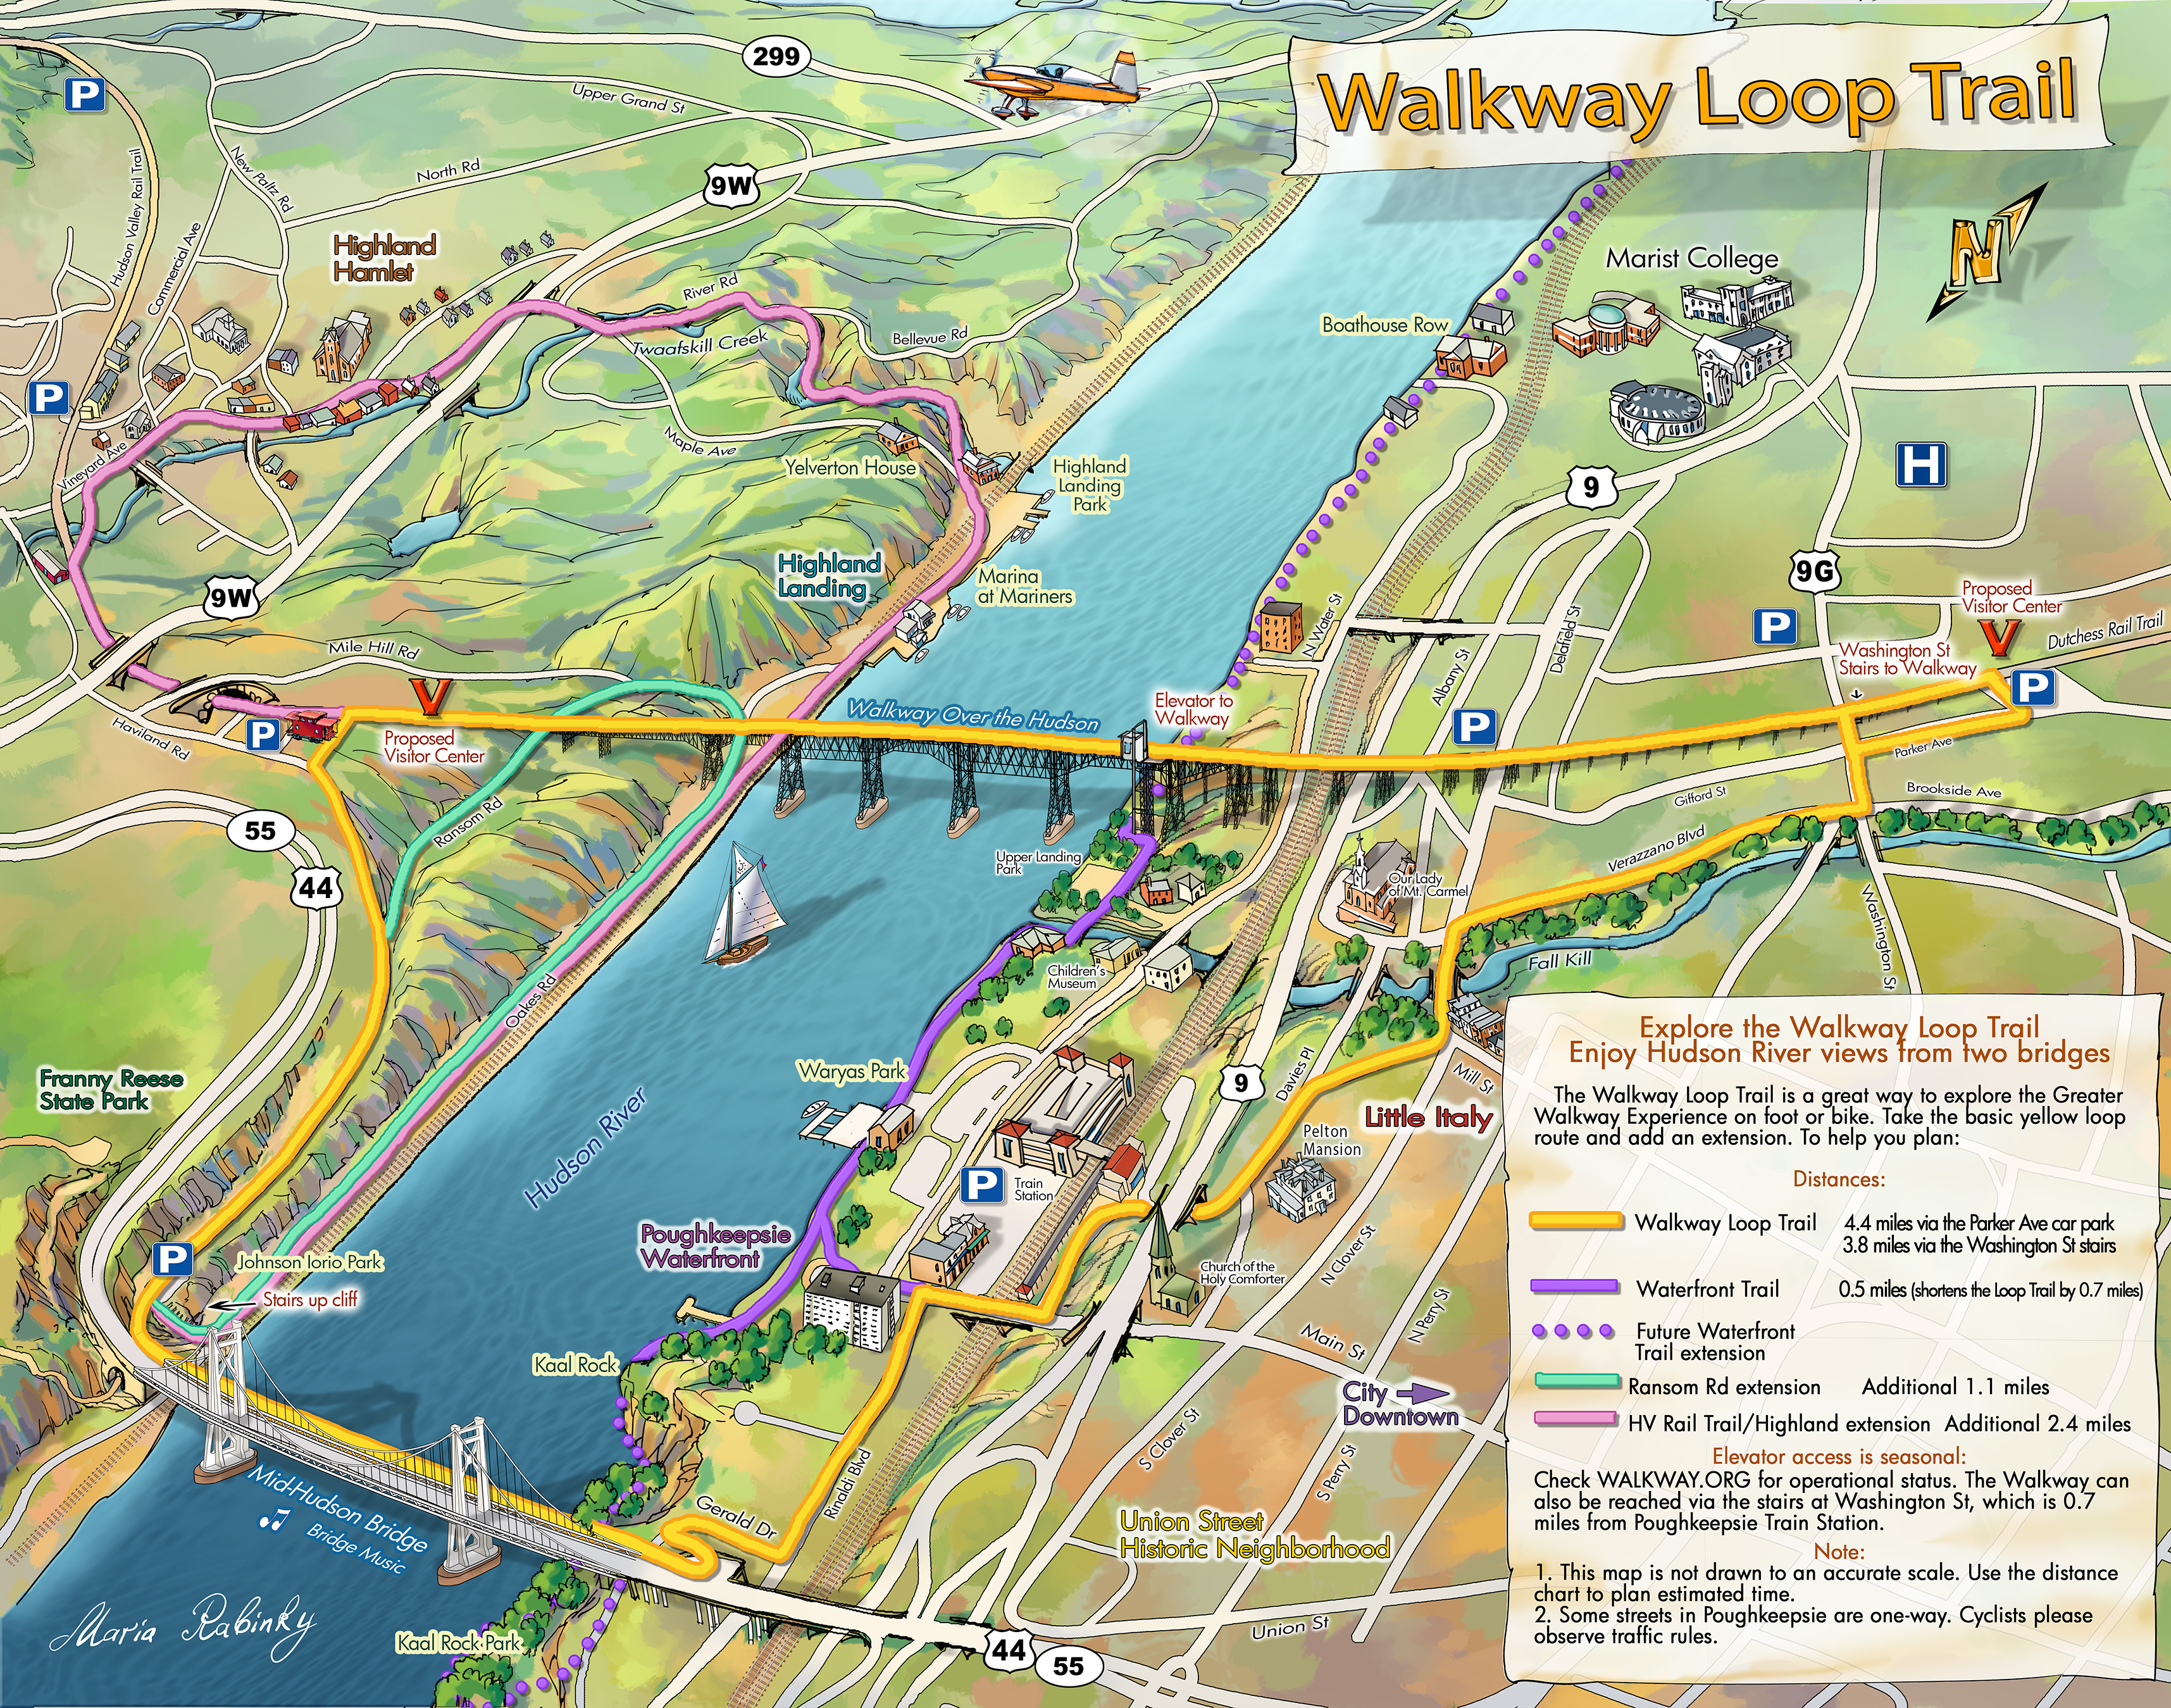 Loop Trail Insert_Poughkeepsie_Illustrated-map-Feb 2017